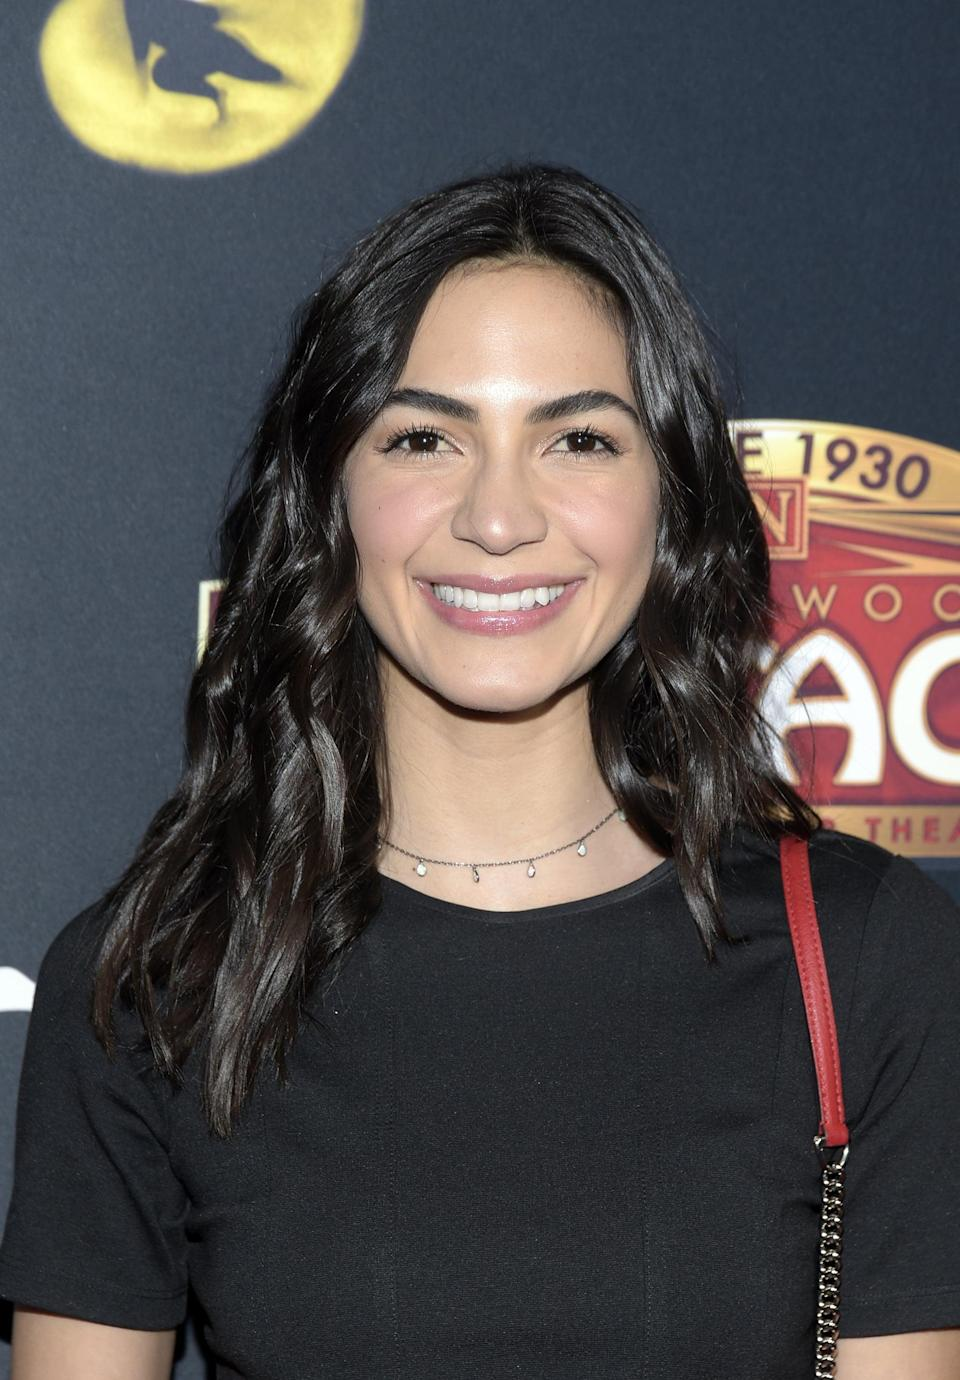 <p>Natalee's first major role in Hollywood was as Nicole Martinez on Freeform's <strong>Siren</strong>. She joined the series during its second season in 2019 and played the role for 12 episodes. </p>